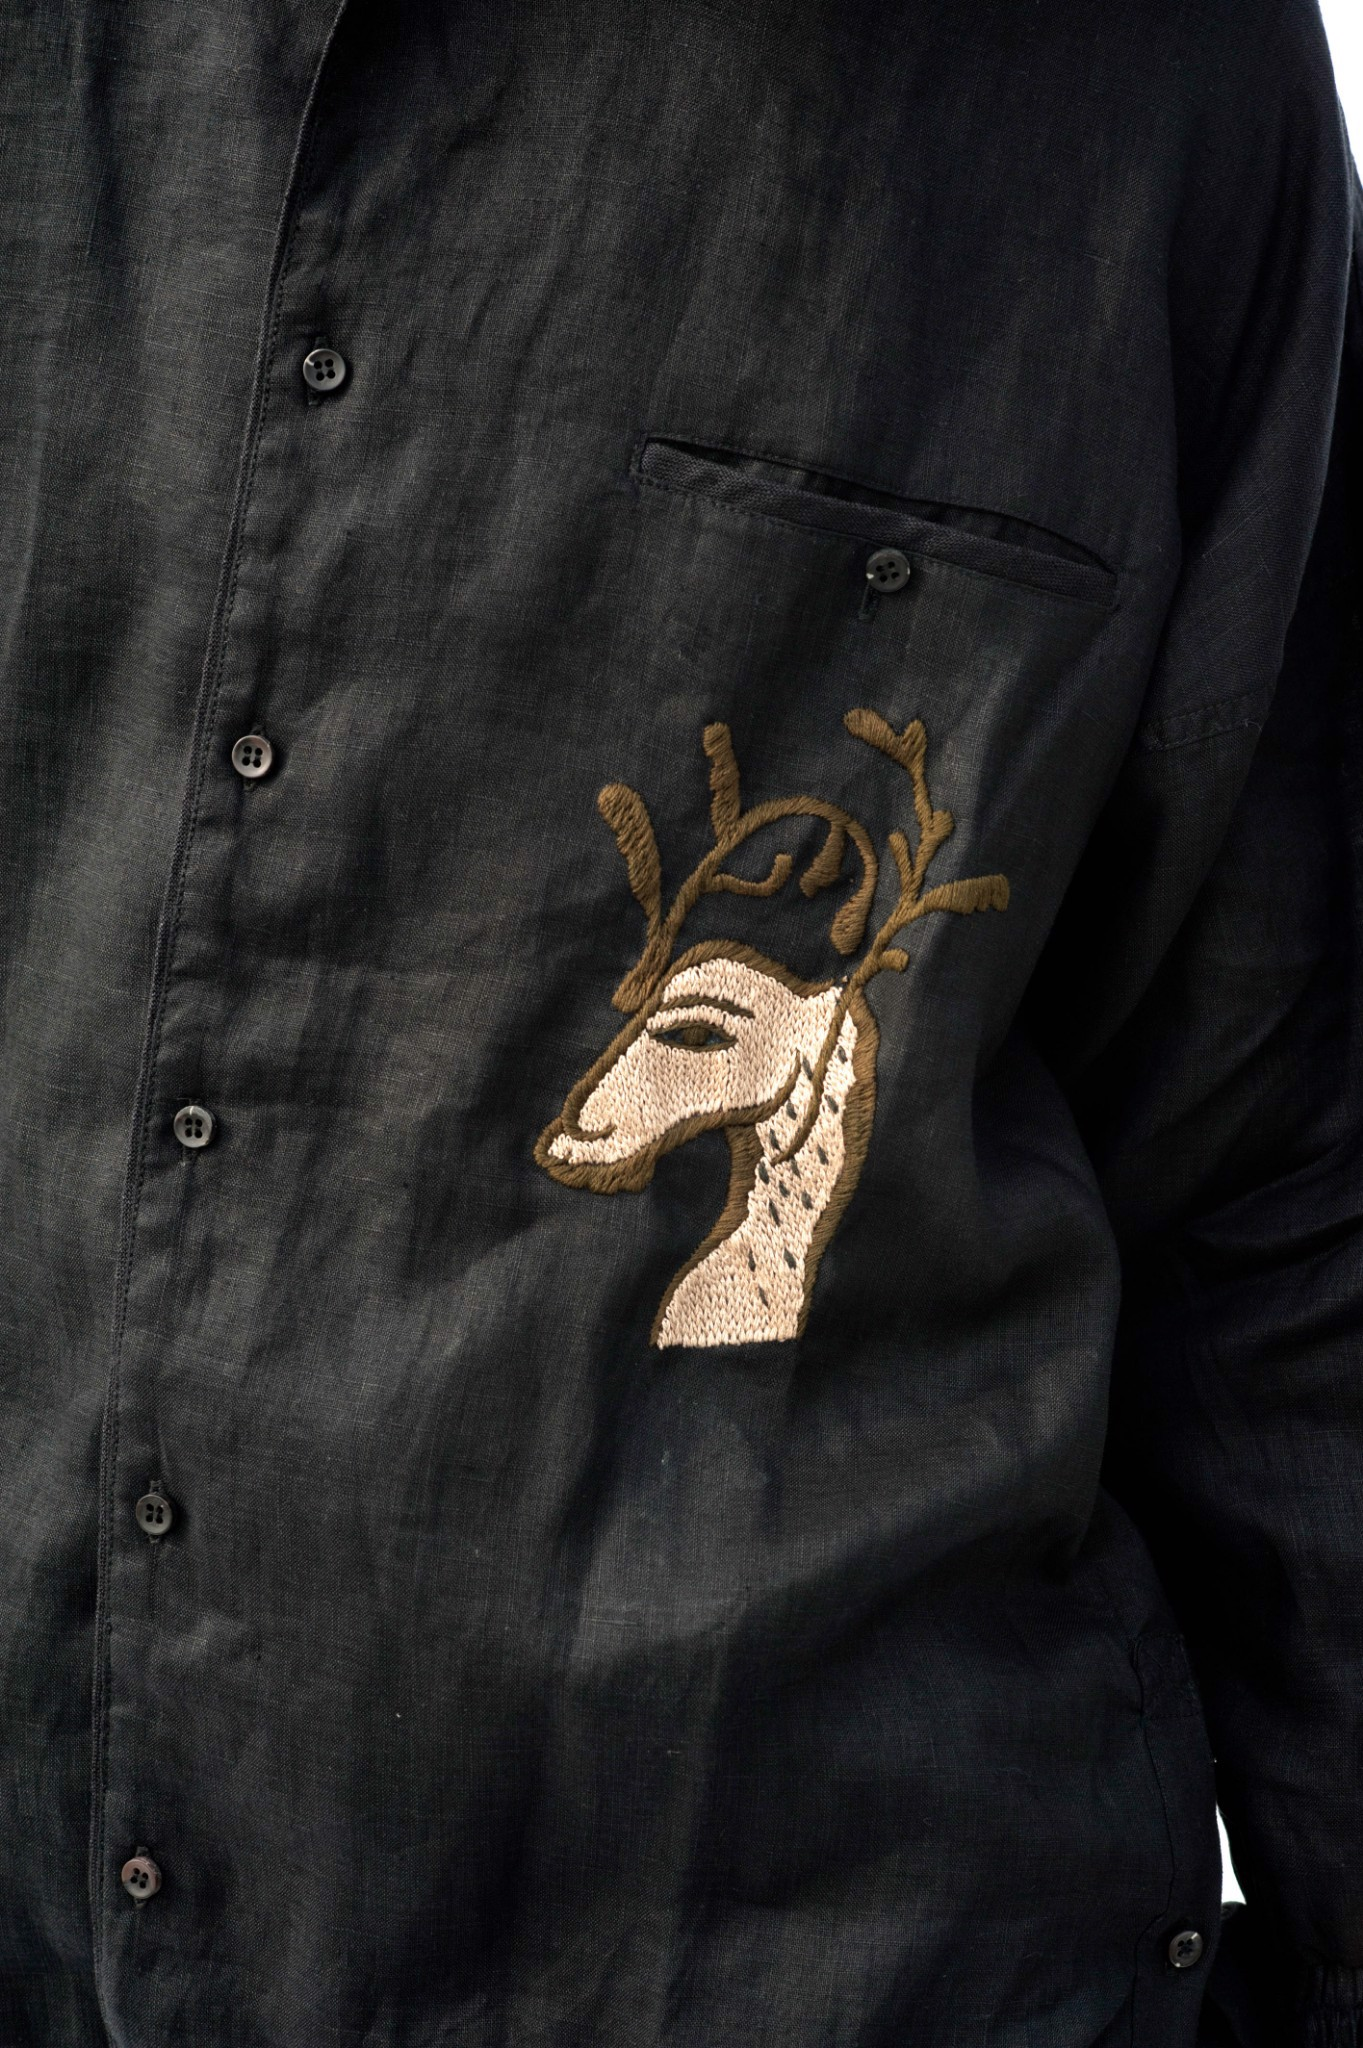 THE INTELLIGENT DEER SHIRT